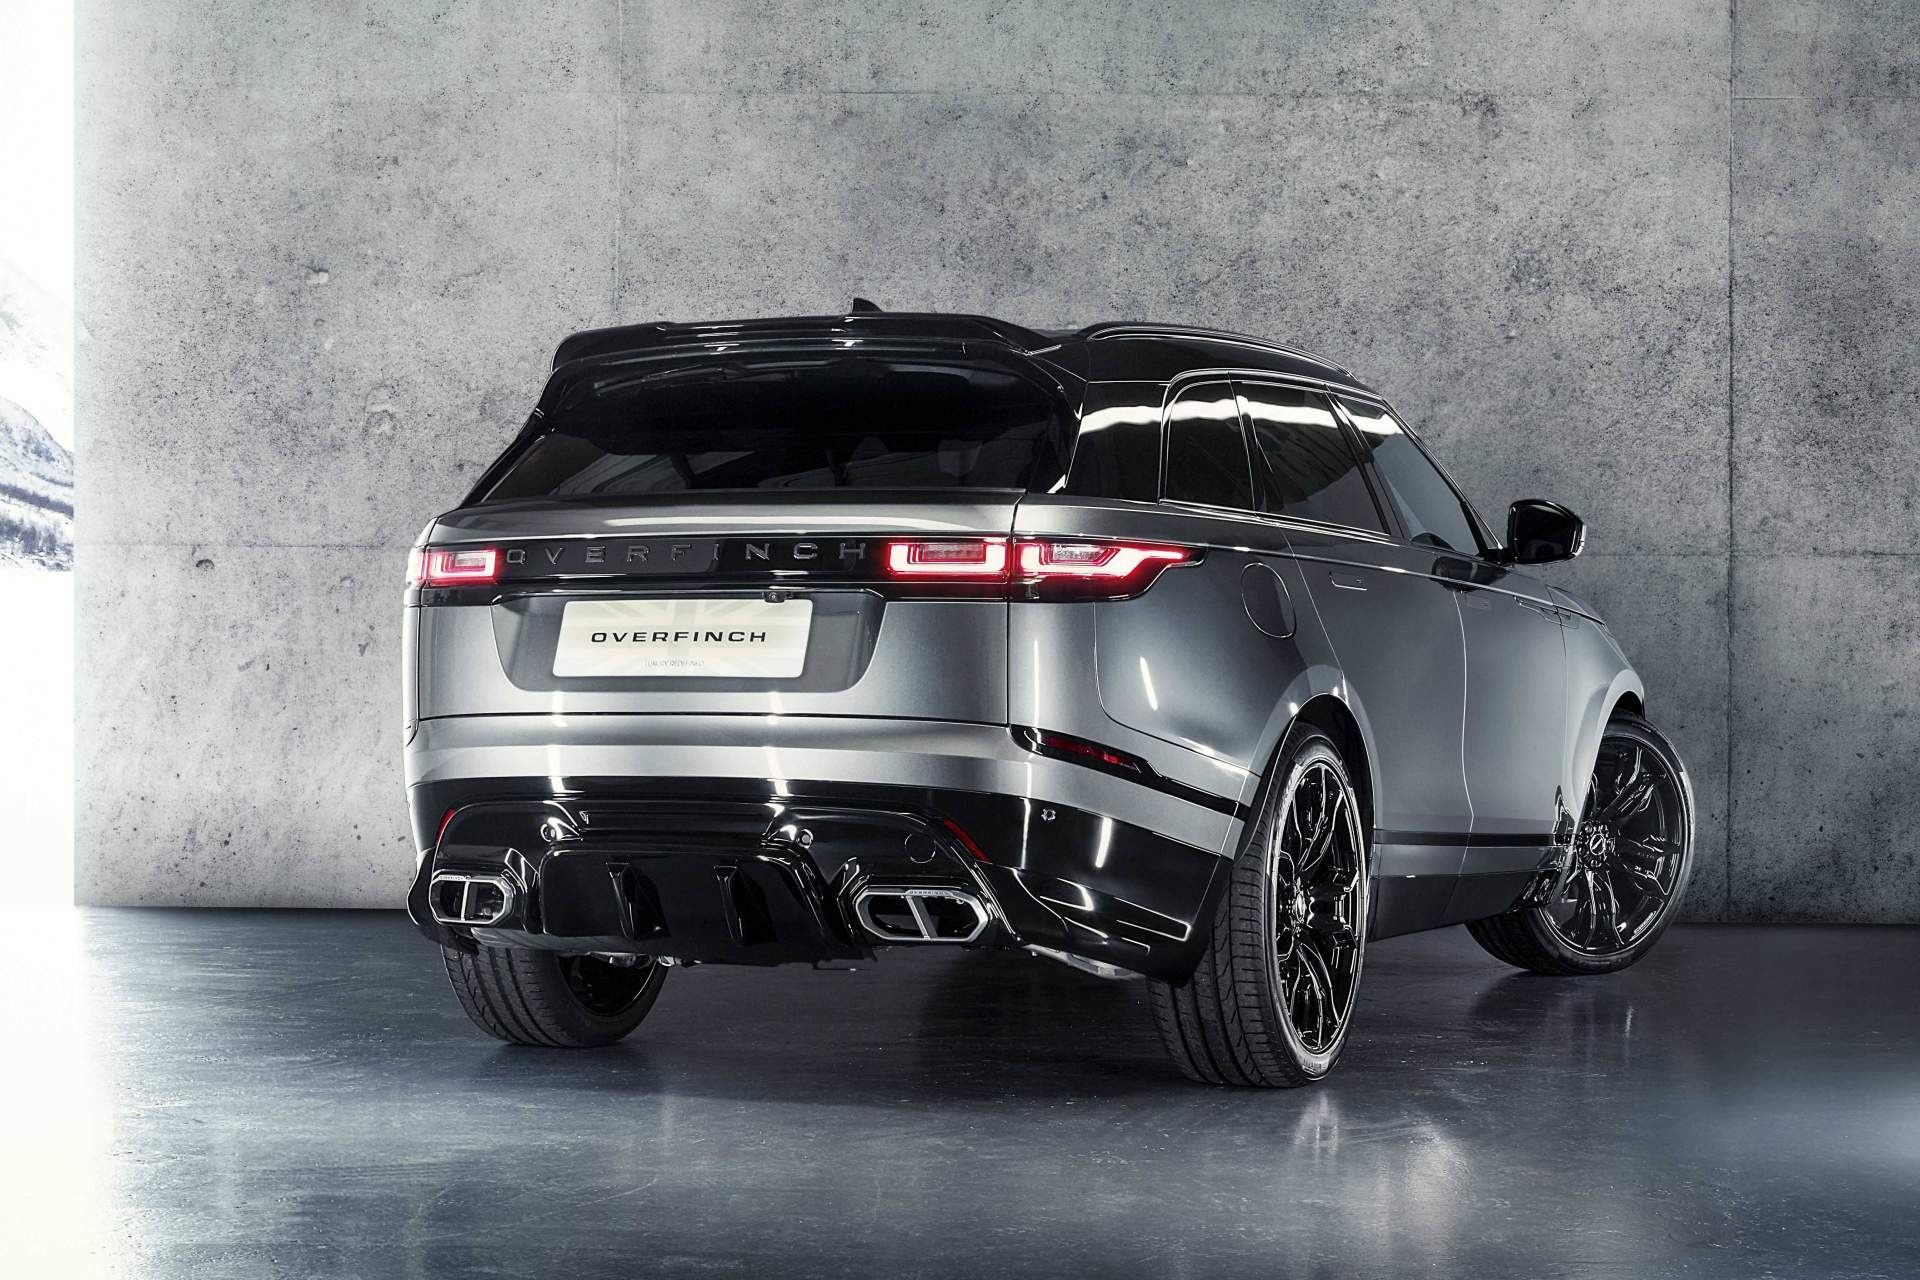 Range Rover Velar by Overfinch (3)